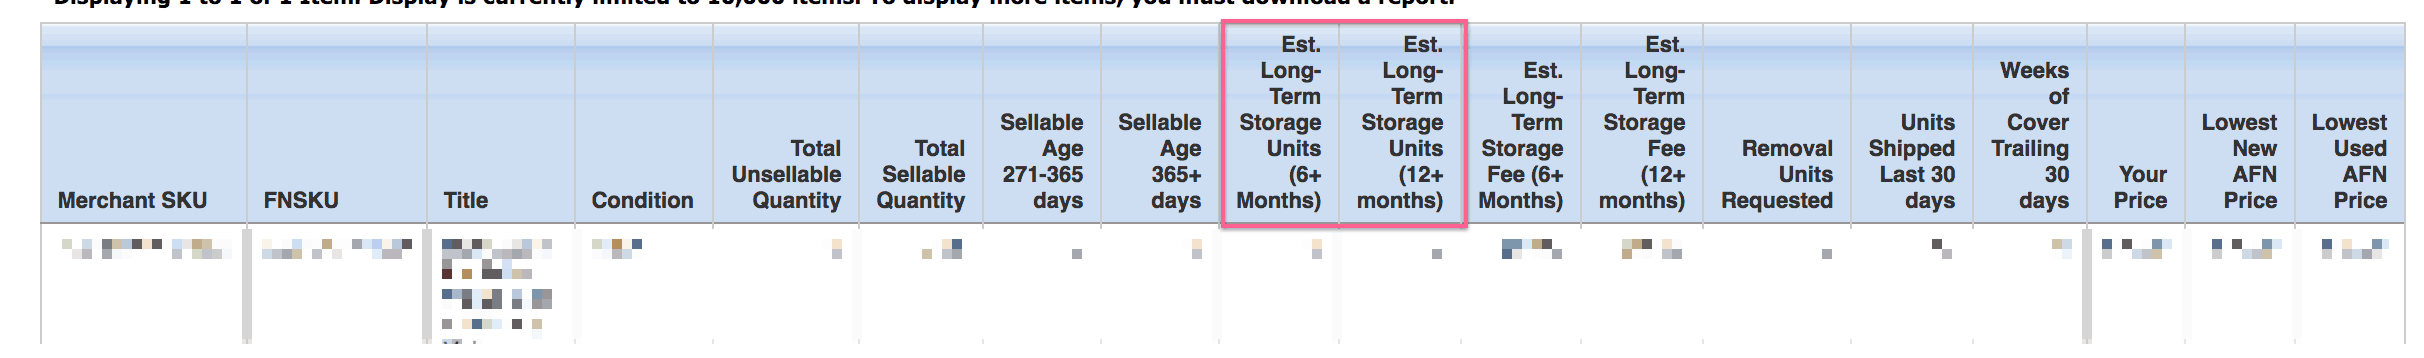 Amazon FBA long-term storage fees